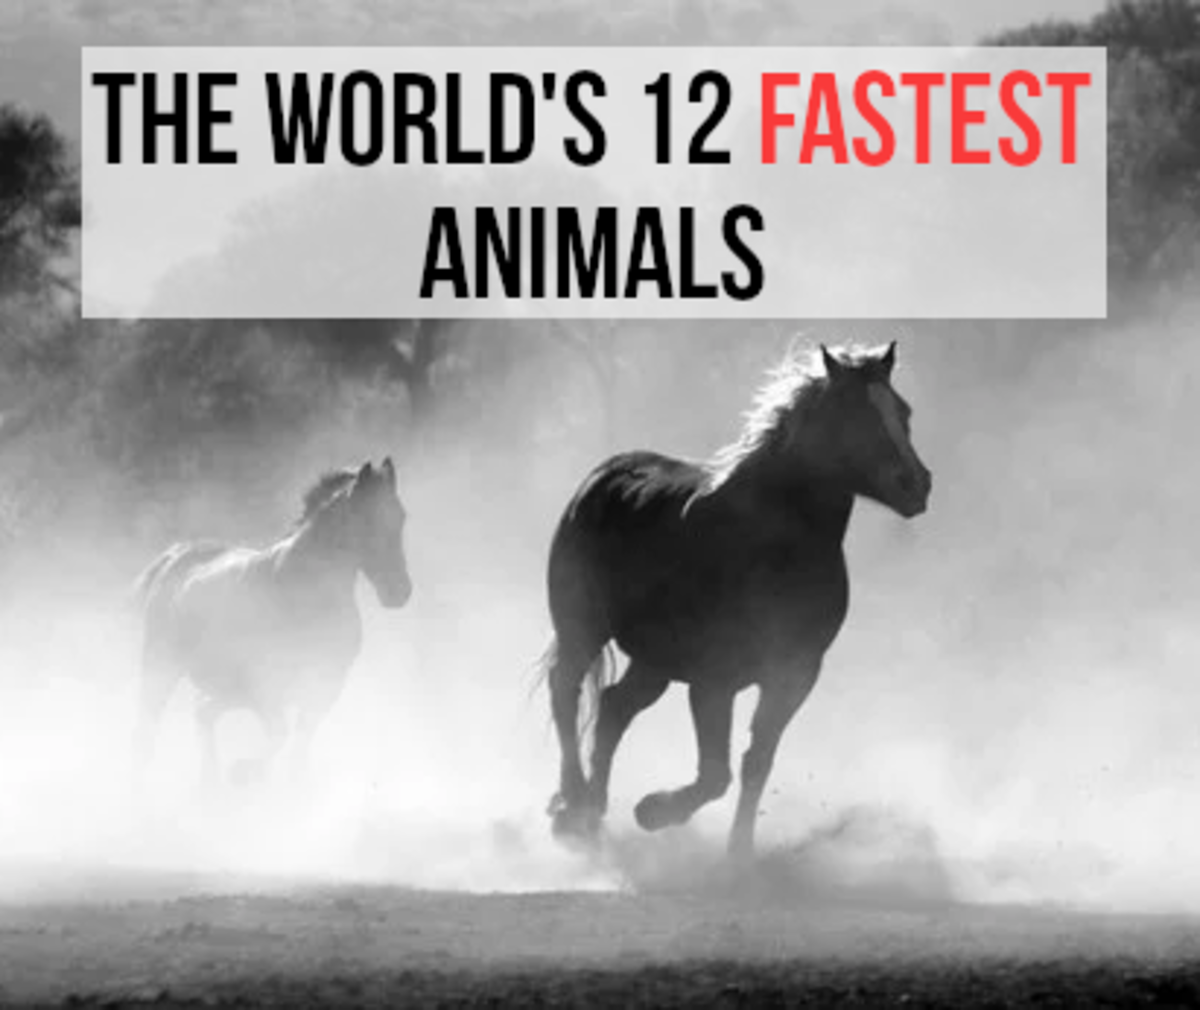 If you want to find out about the fastest animals in the world, read on...